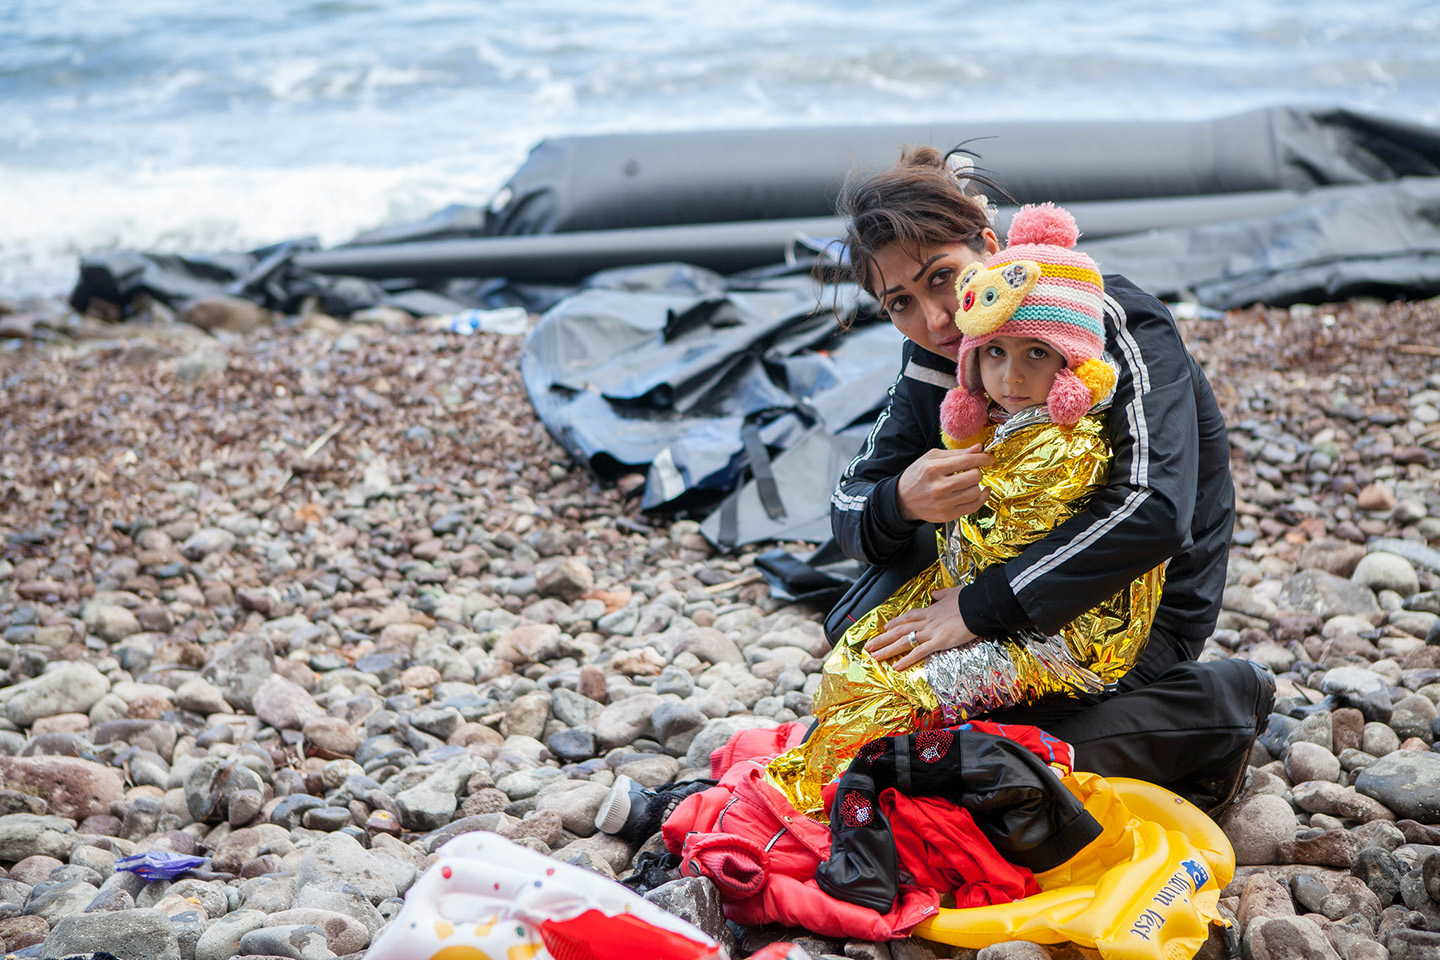 web-refugee-boy-mother-boat-sea-cafod-photo-library-cc